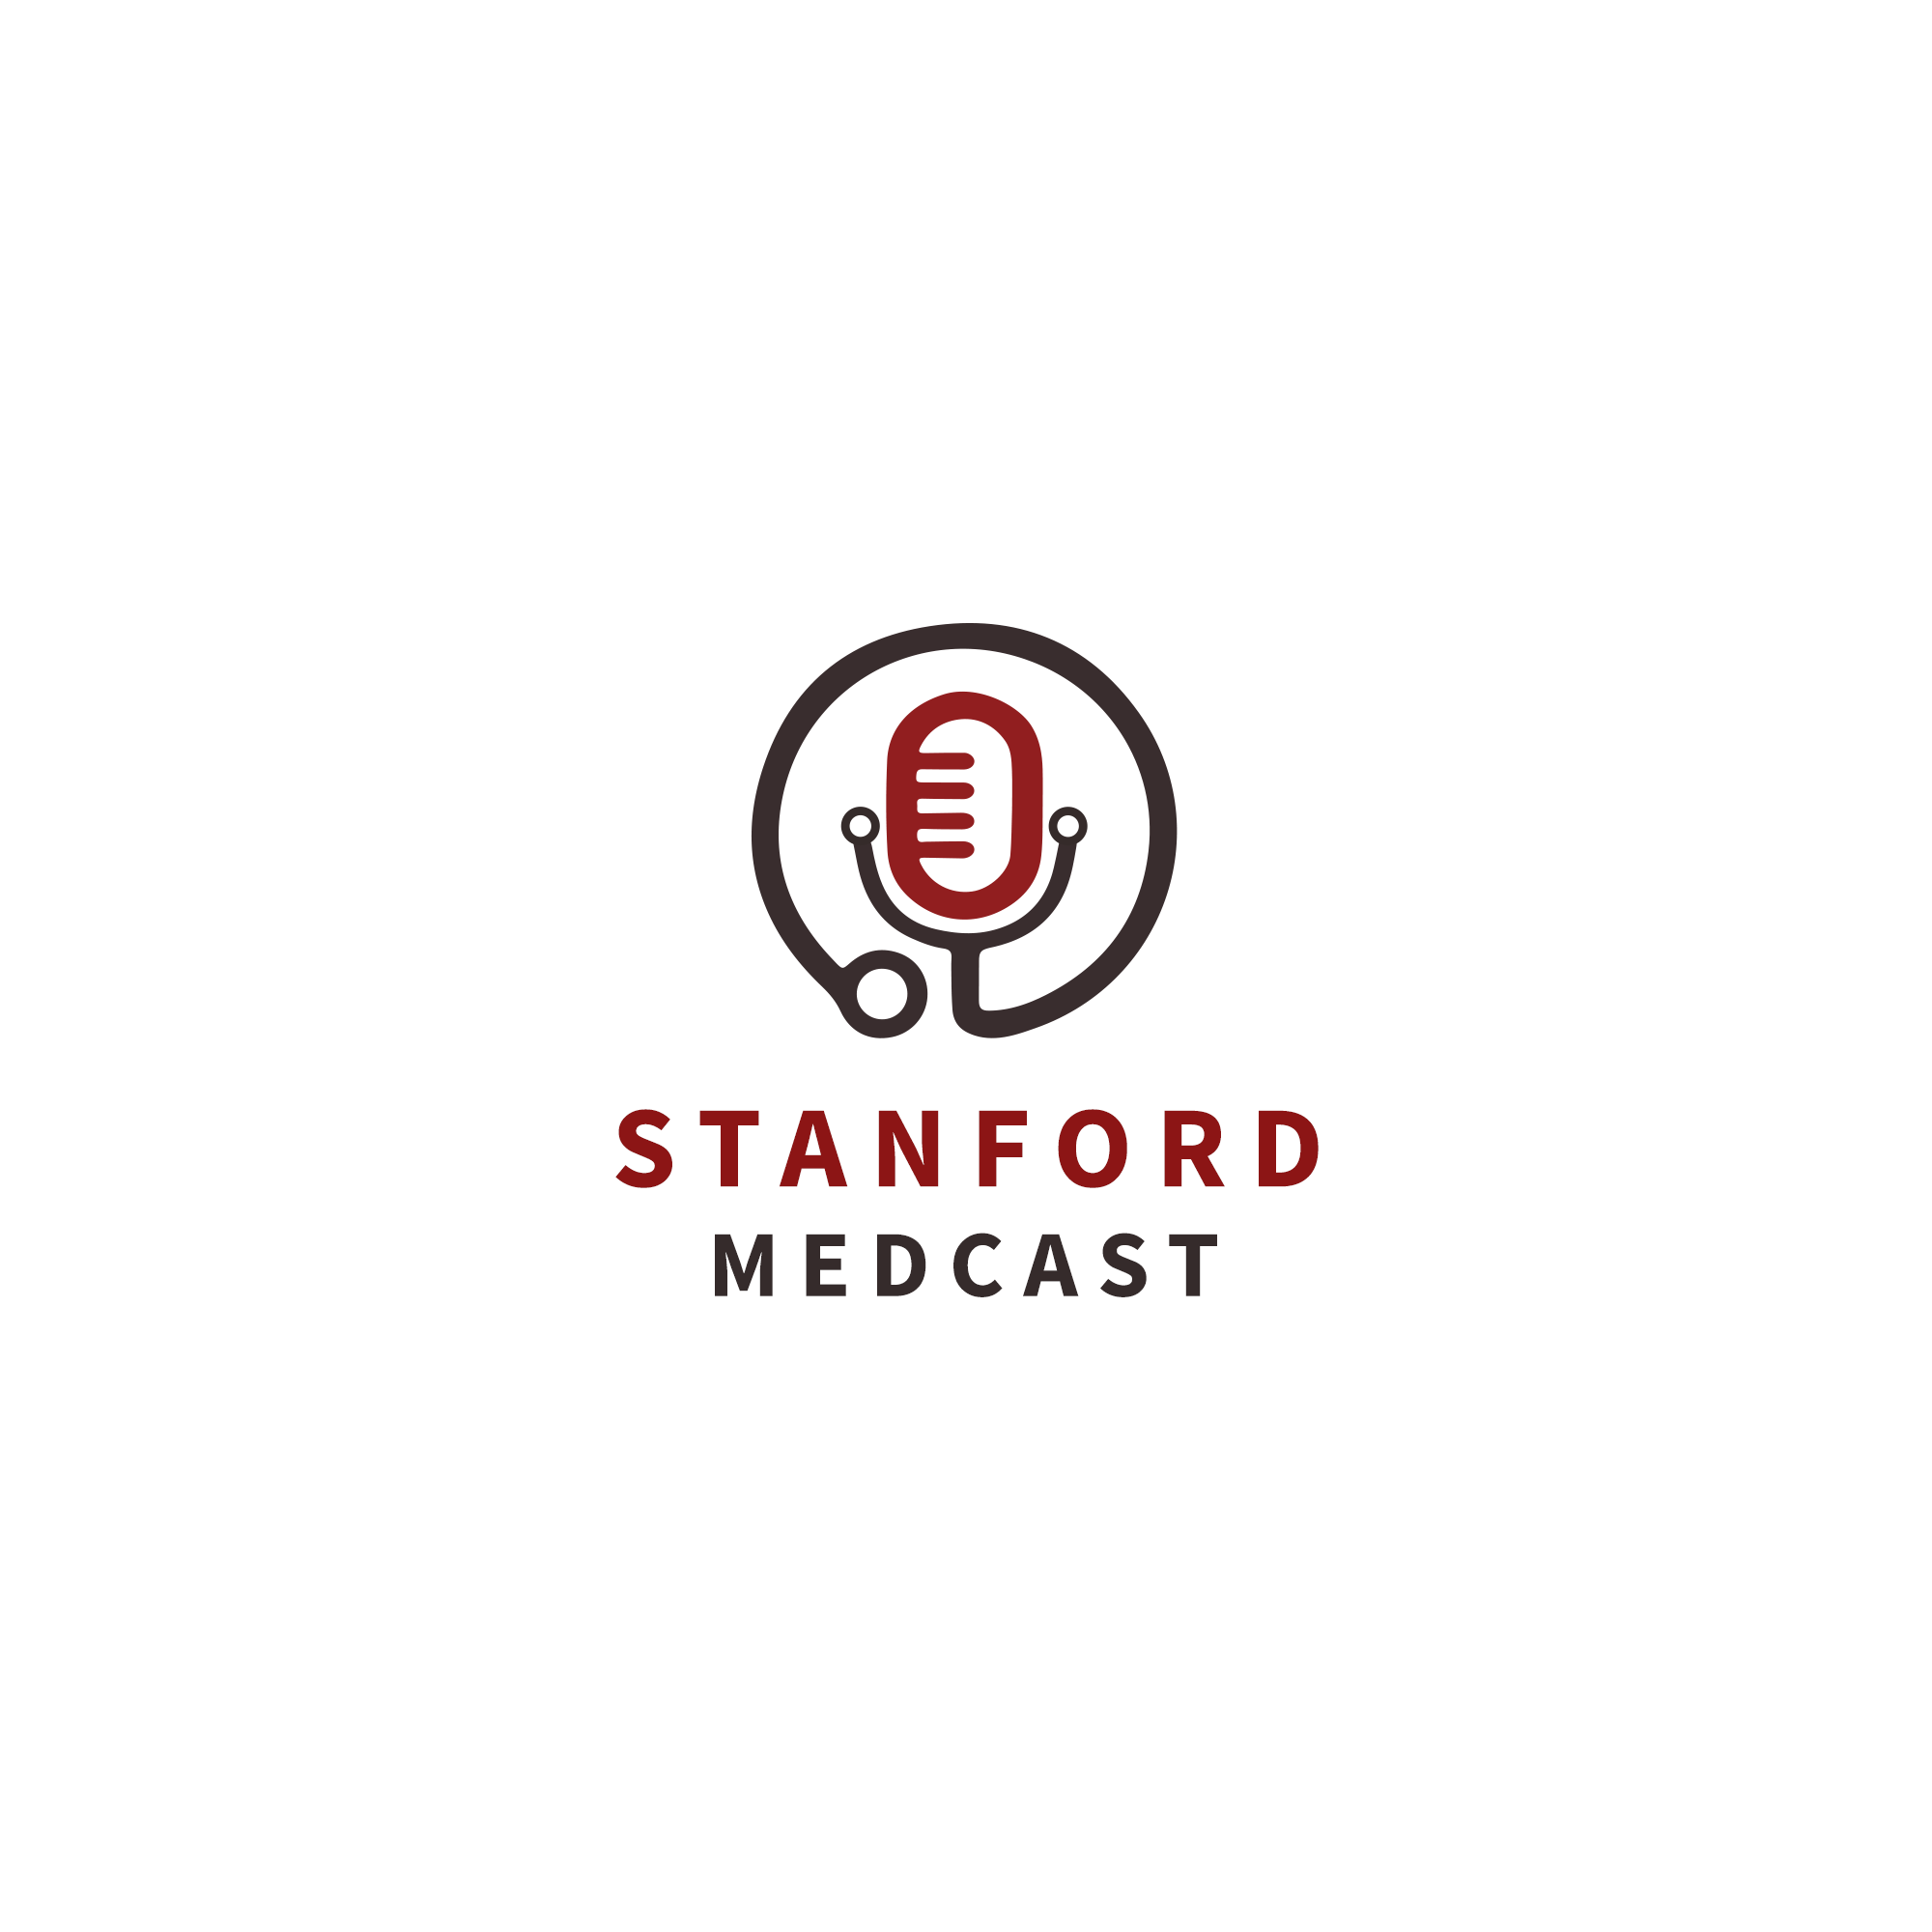 Stanford Medcast Episode 5: COVID-19 Mini-series - Immunomodulators Under Evaluation Banner